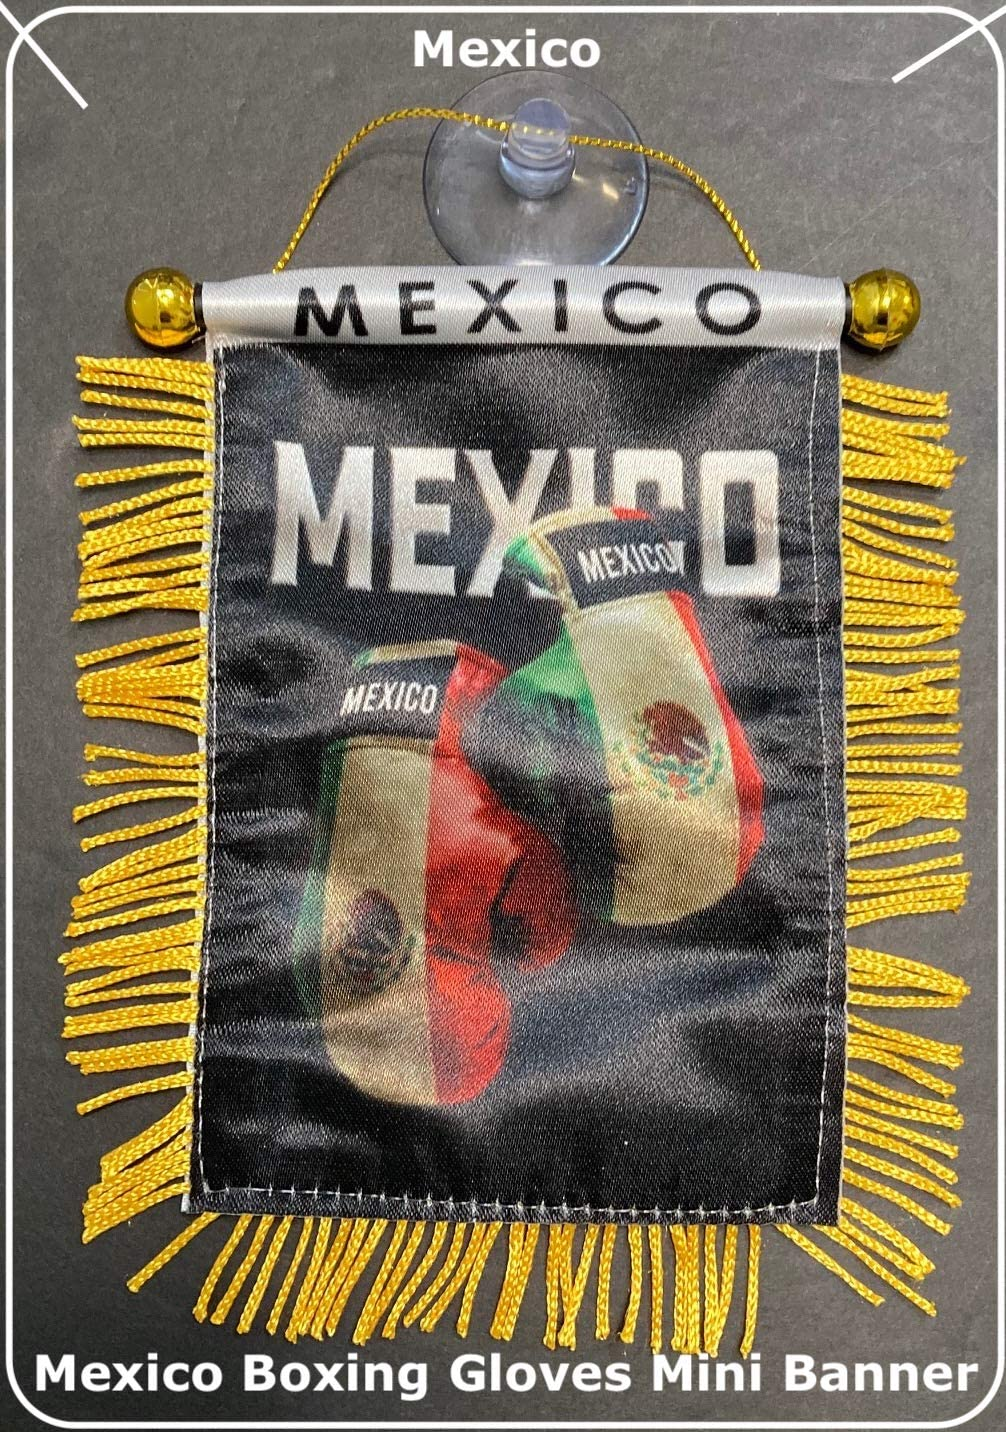 Mexico Mexican Flags for car Interior Rearview Mirror or Home Sticks to Windows Glass Quick and Easy Quality Small Hanging Mini Banner Flags car Accessories (1 Flag